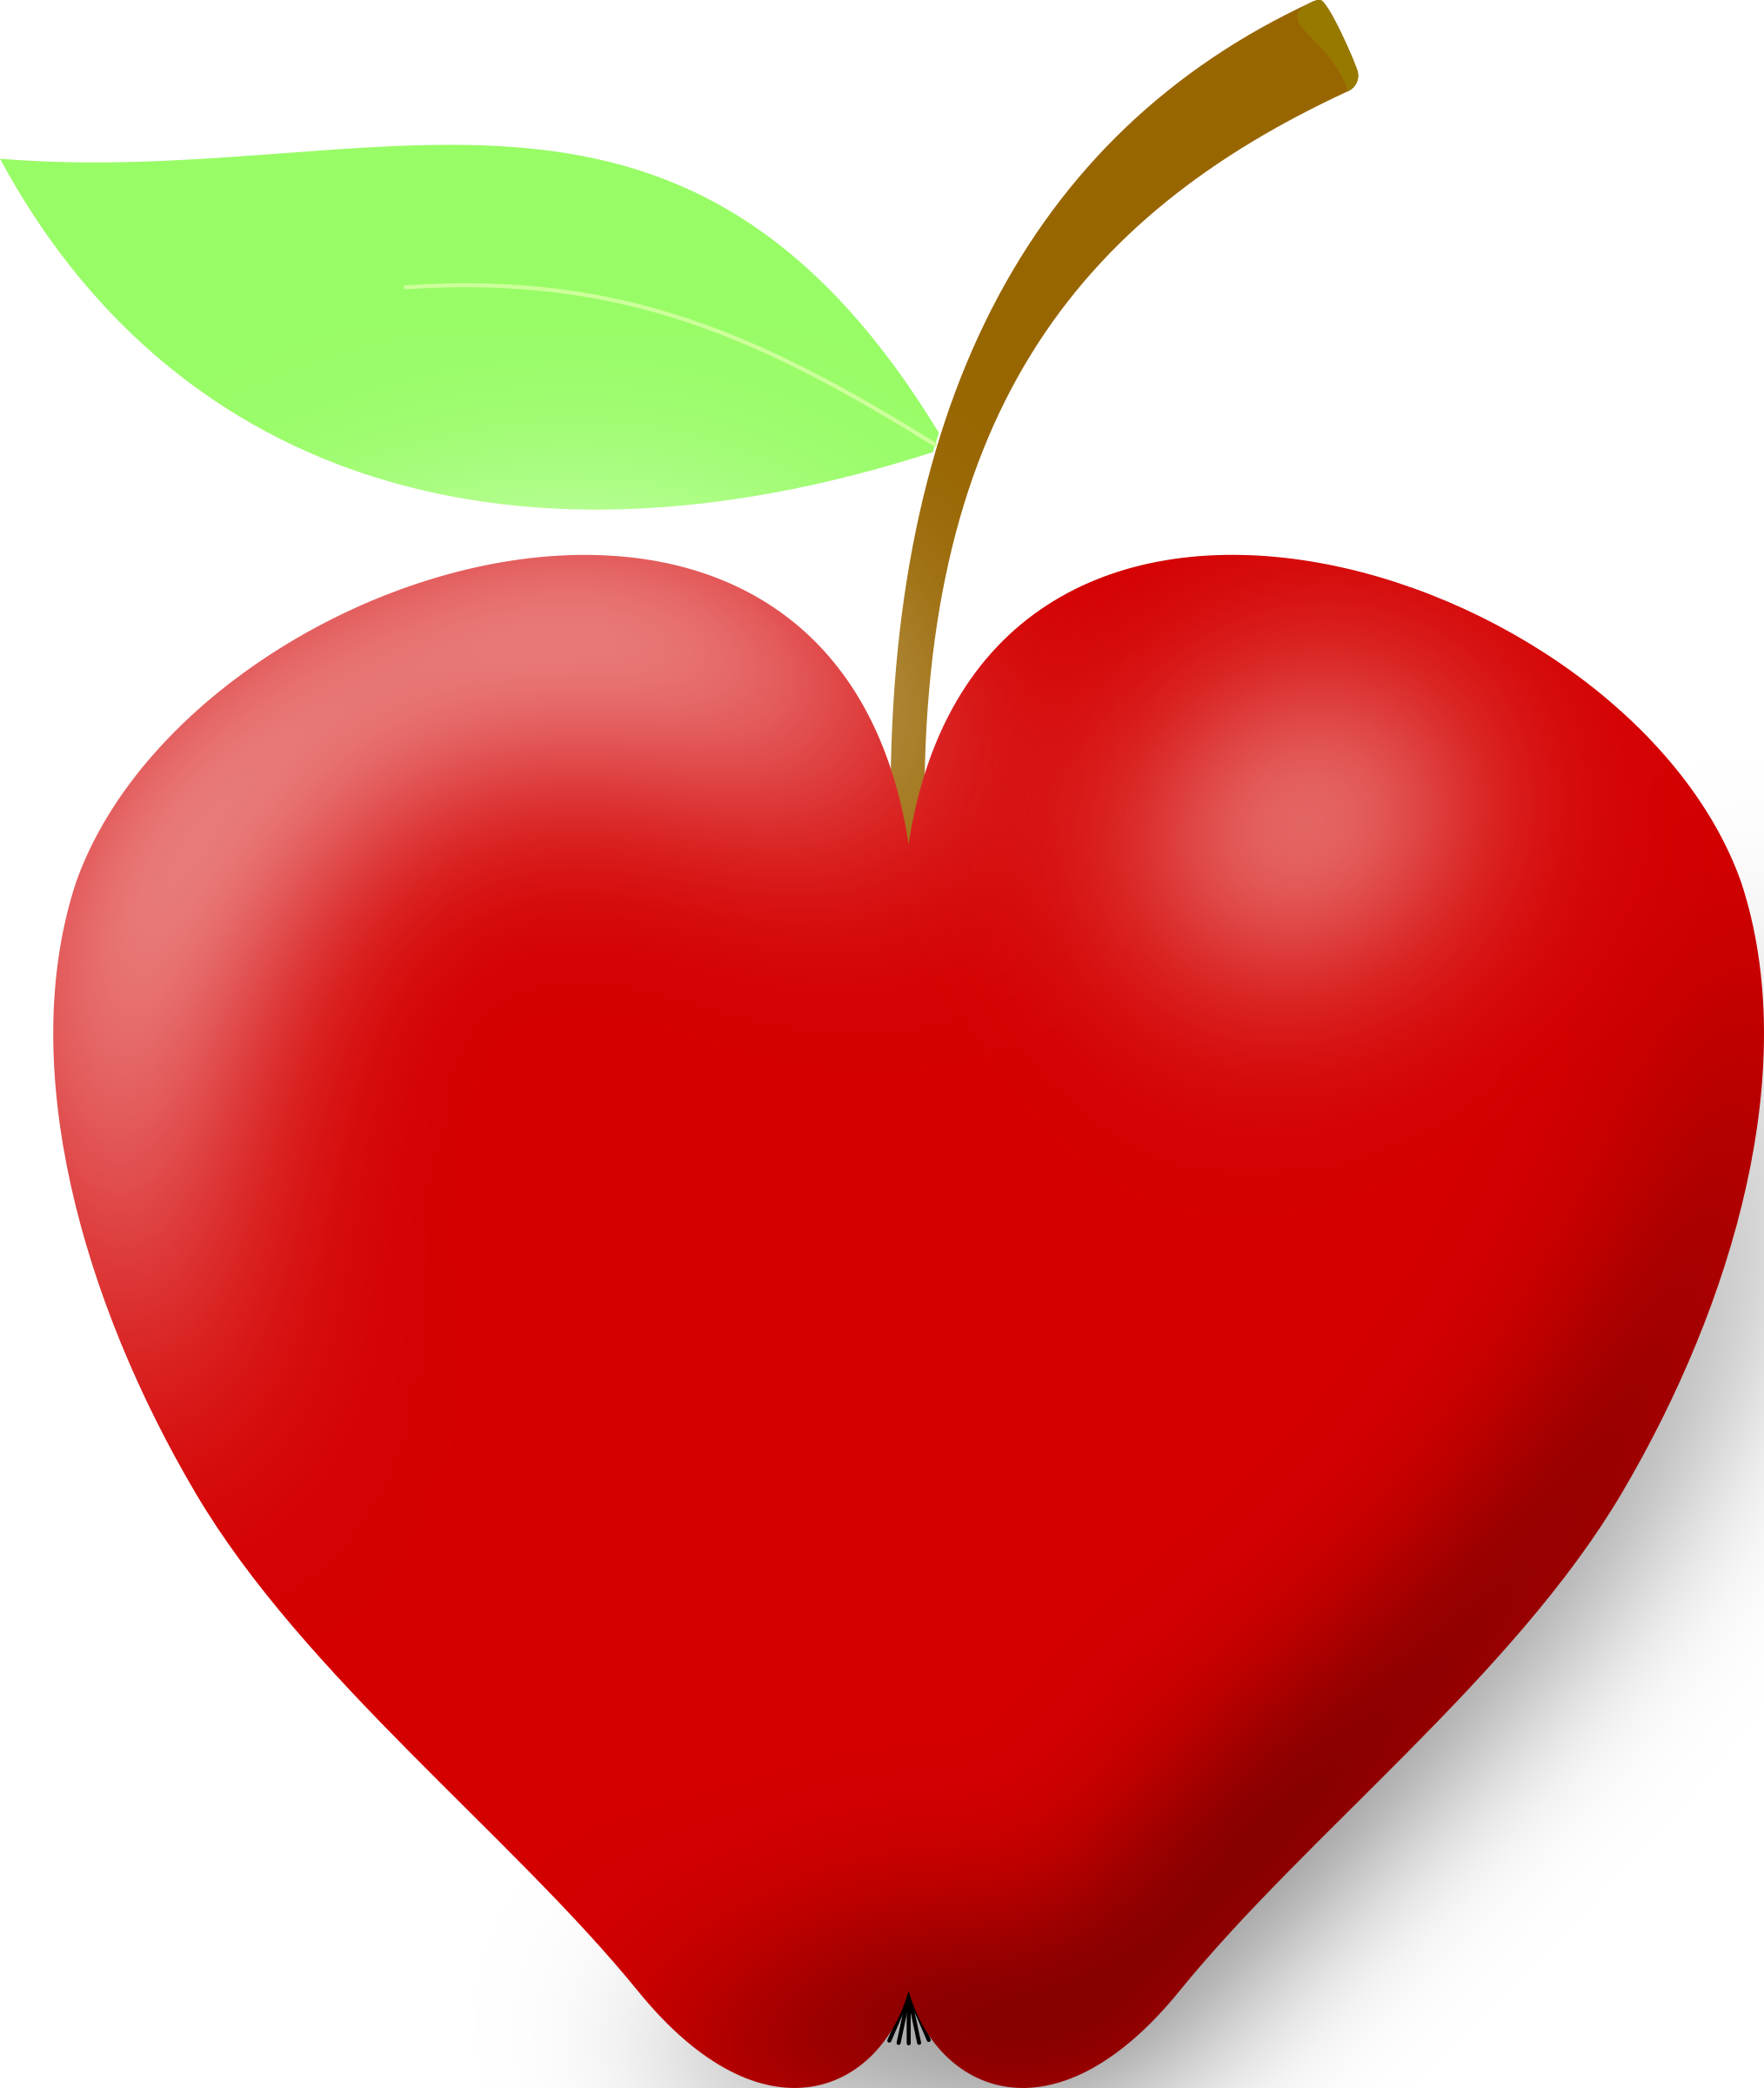 Heart-shaped clipart apple Clipart Apple Apple